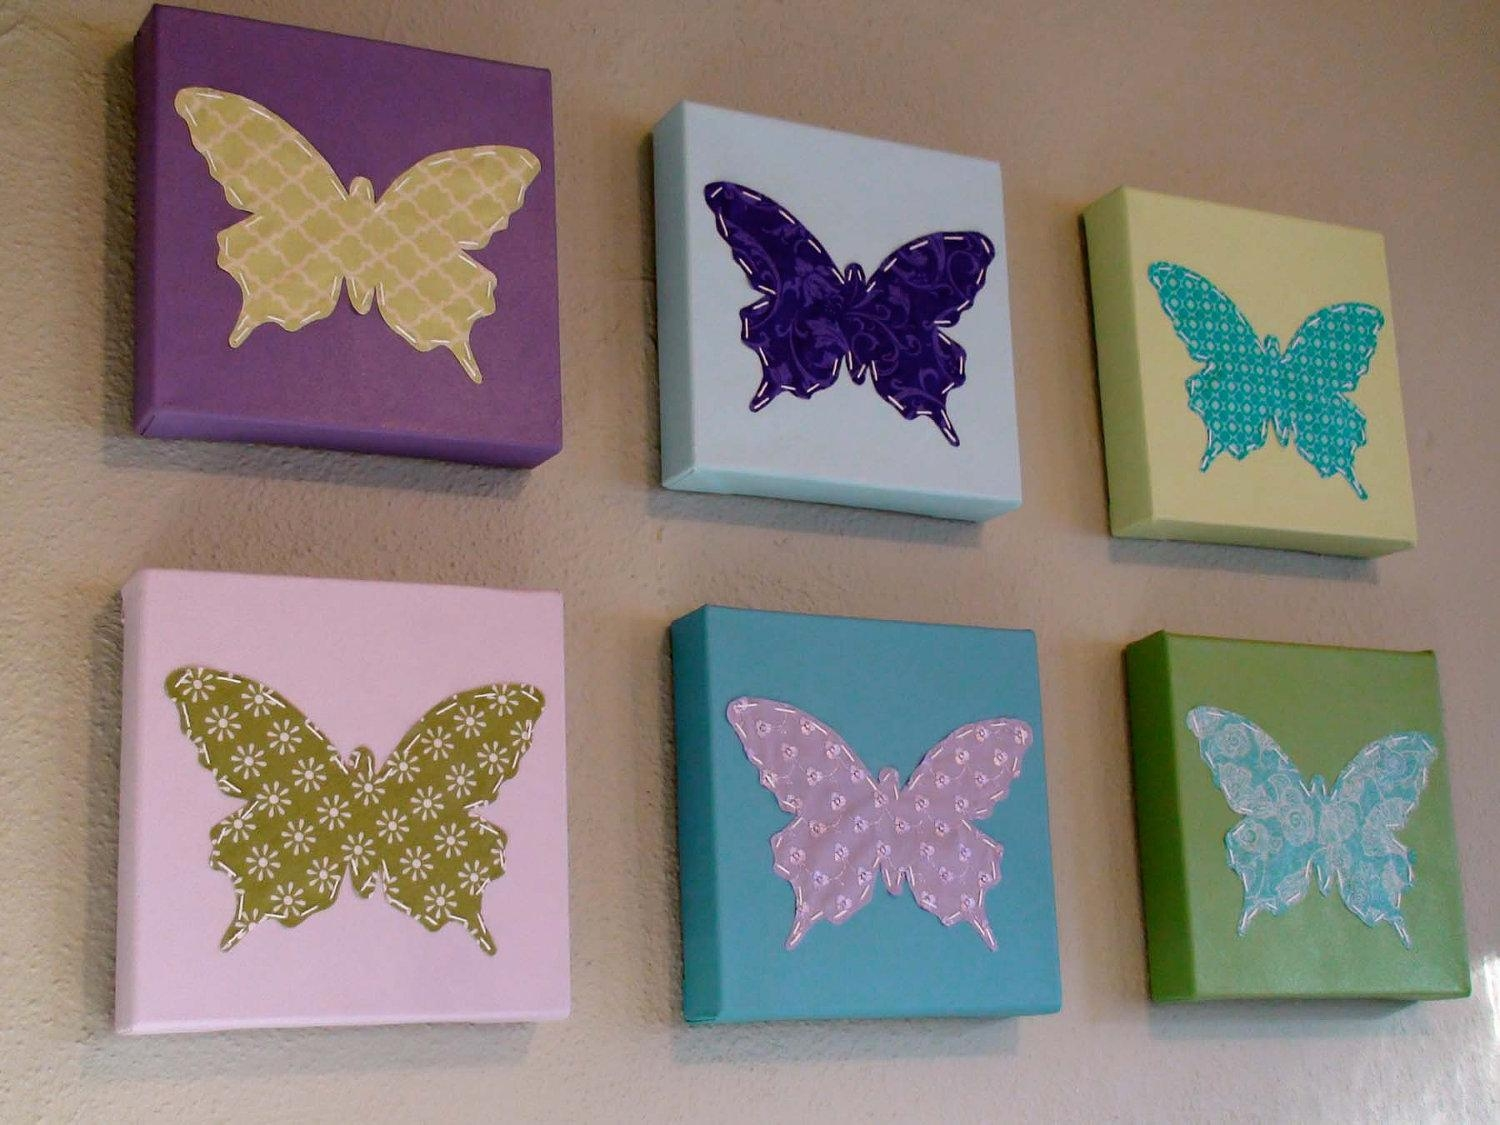 Butterfly Canvas Wall Art Diy | Wallartideas With Regard To Butterfly Canvas Wall Art (Image 3 of 20)